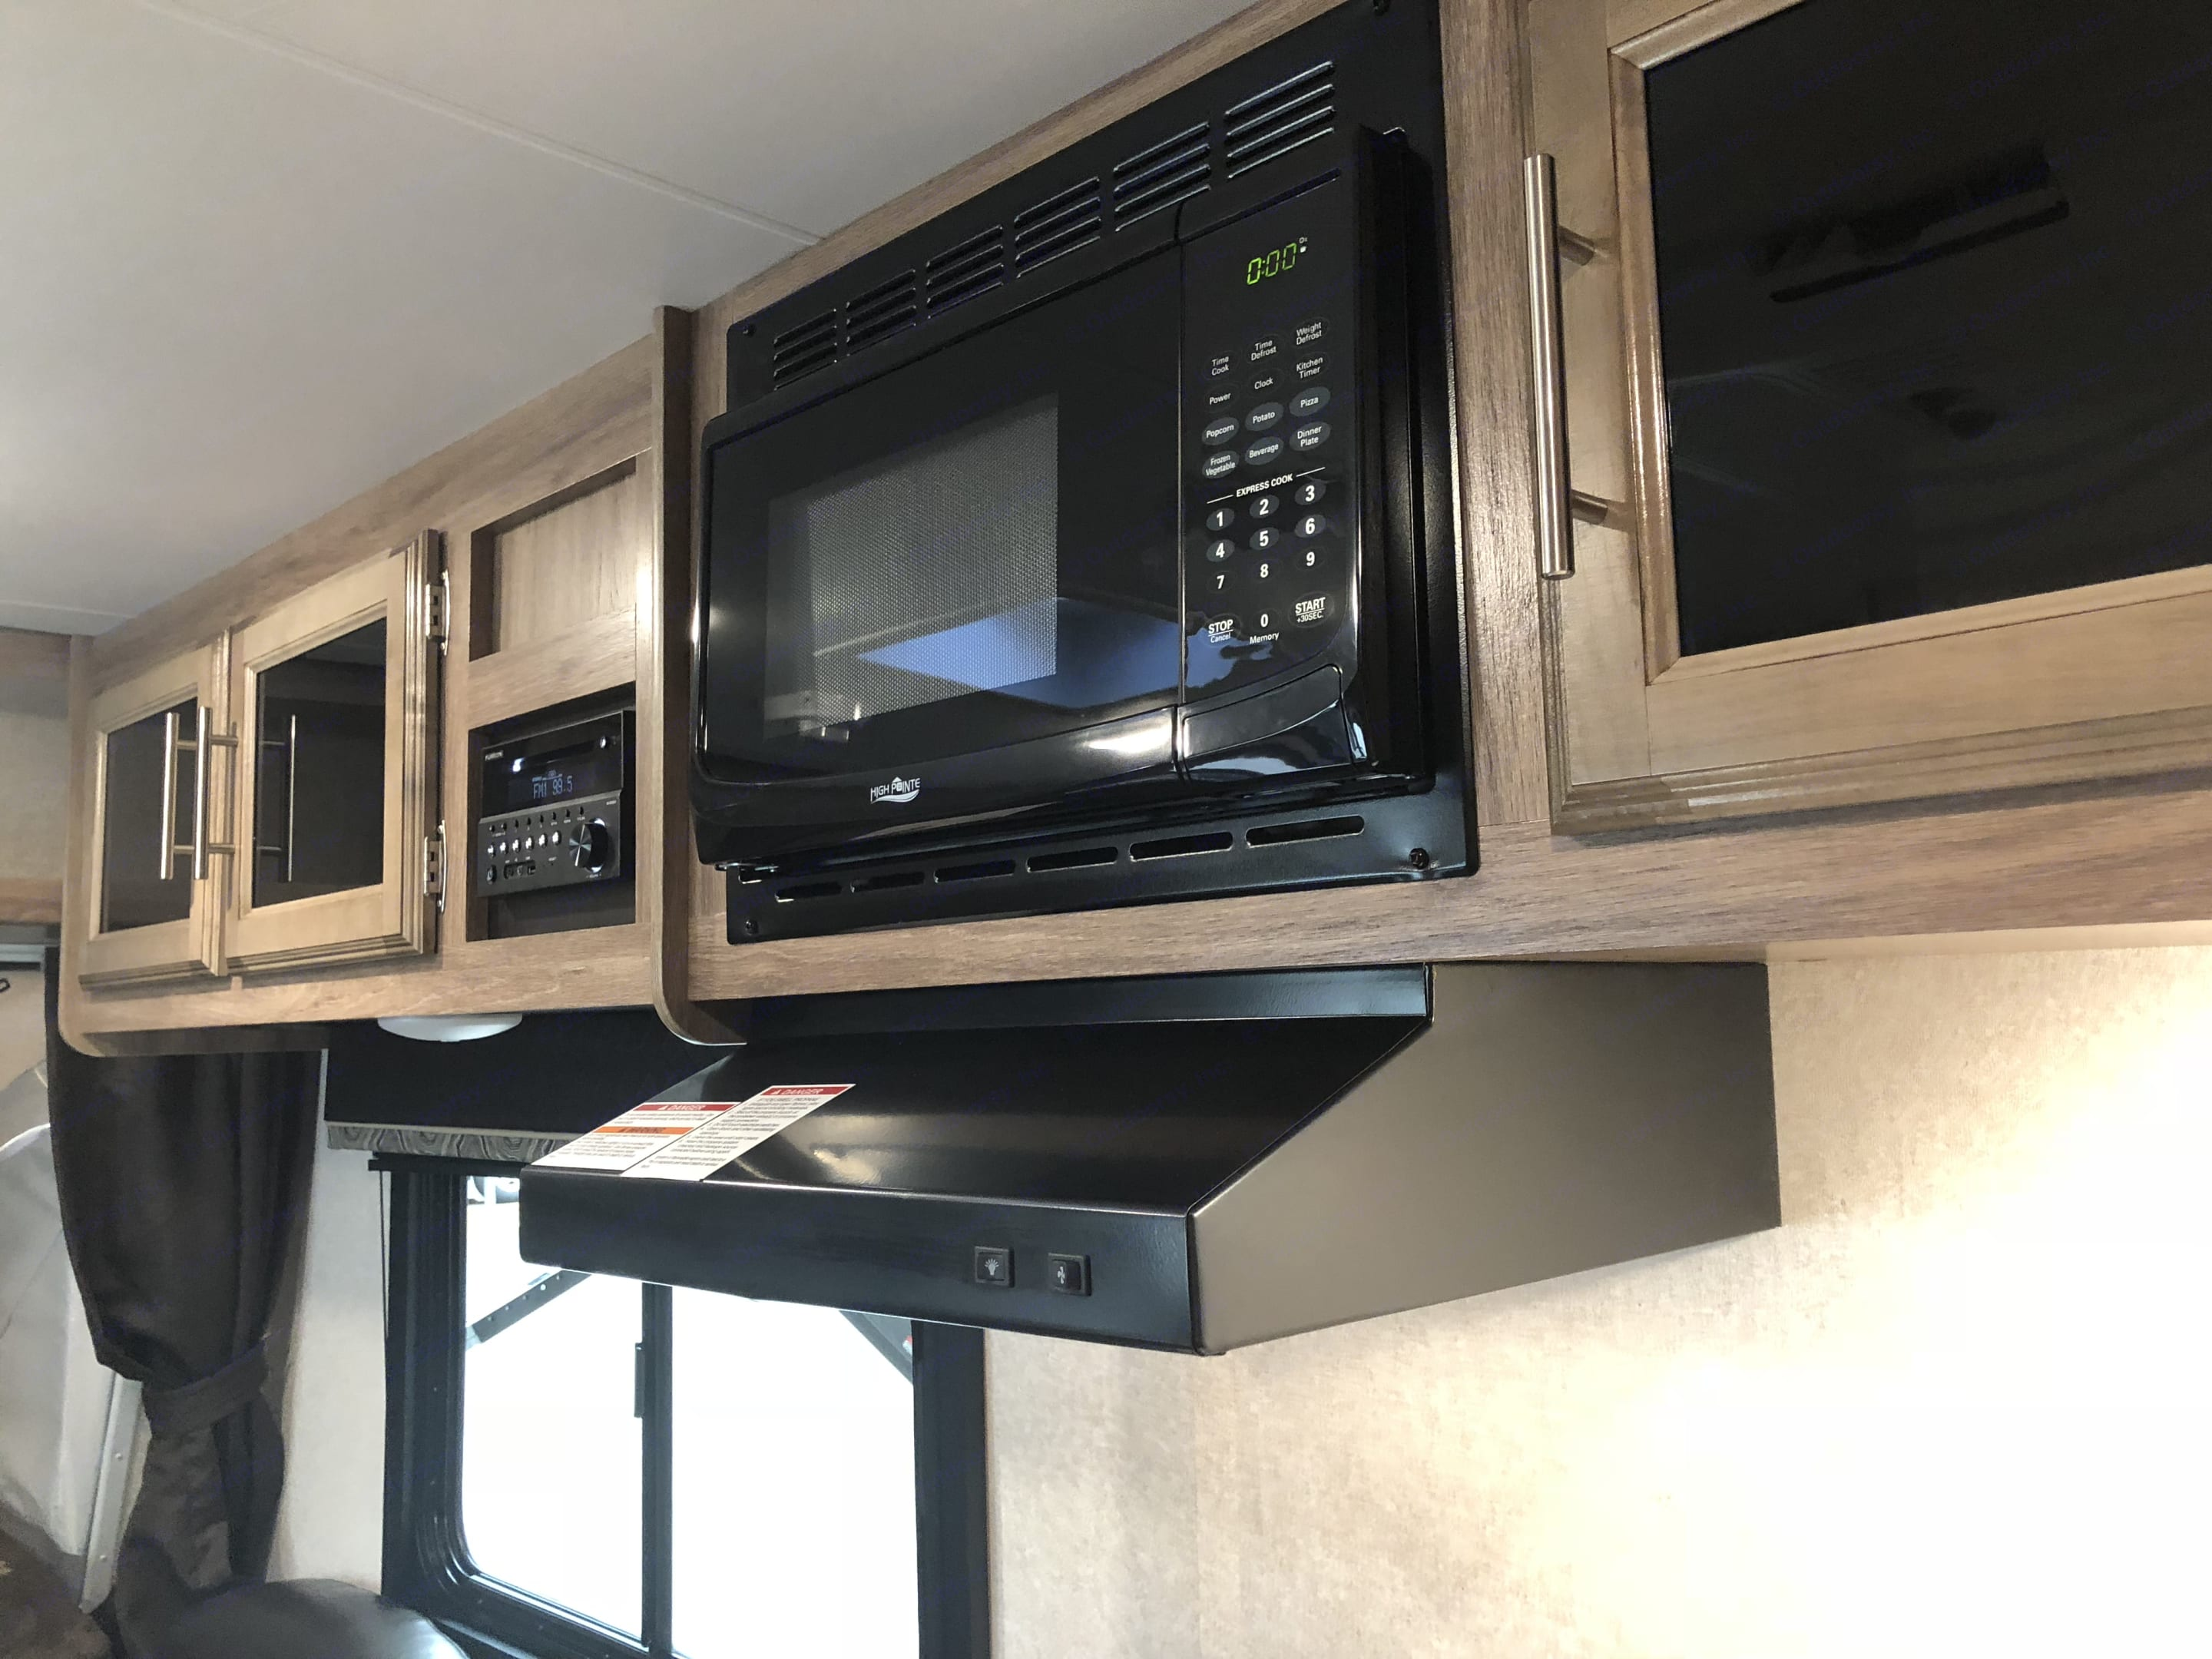 Storage, microwave, hooded range with a fan and light, radio with indoor/outdoor speakers, blue tooth capabilities, dvd player which plays to the television.. Jayco Jay Feather 2018